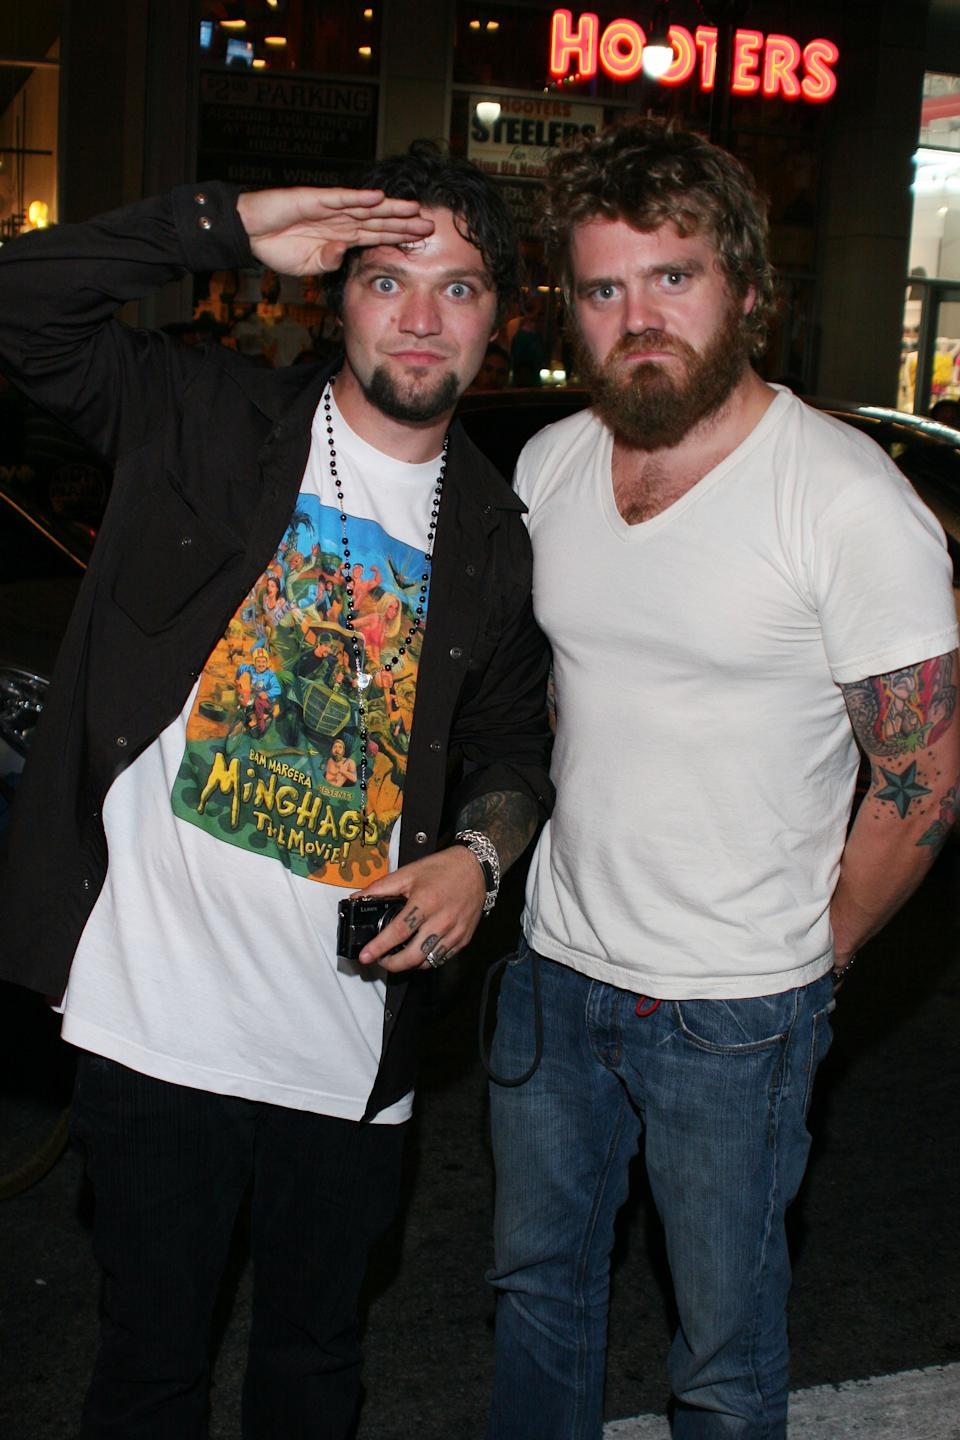 Bam Margera and Ryan Dunn attend Gumball 3000 10th Anniversary Party at The Roosevelt Hotel on August 9, 2008 in Hollywood, CA. (Photo by DAVID CROTTY/Patrick McMullan via Getty Images)